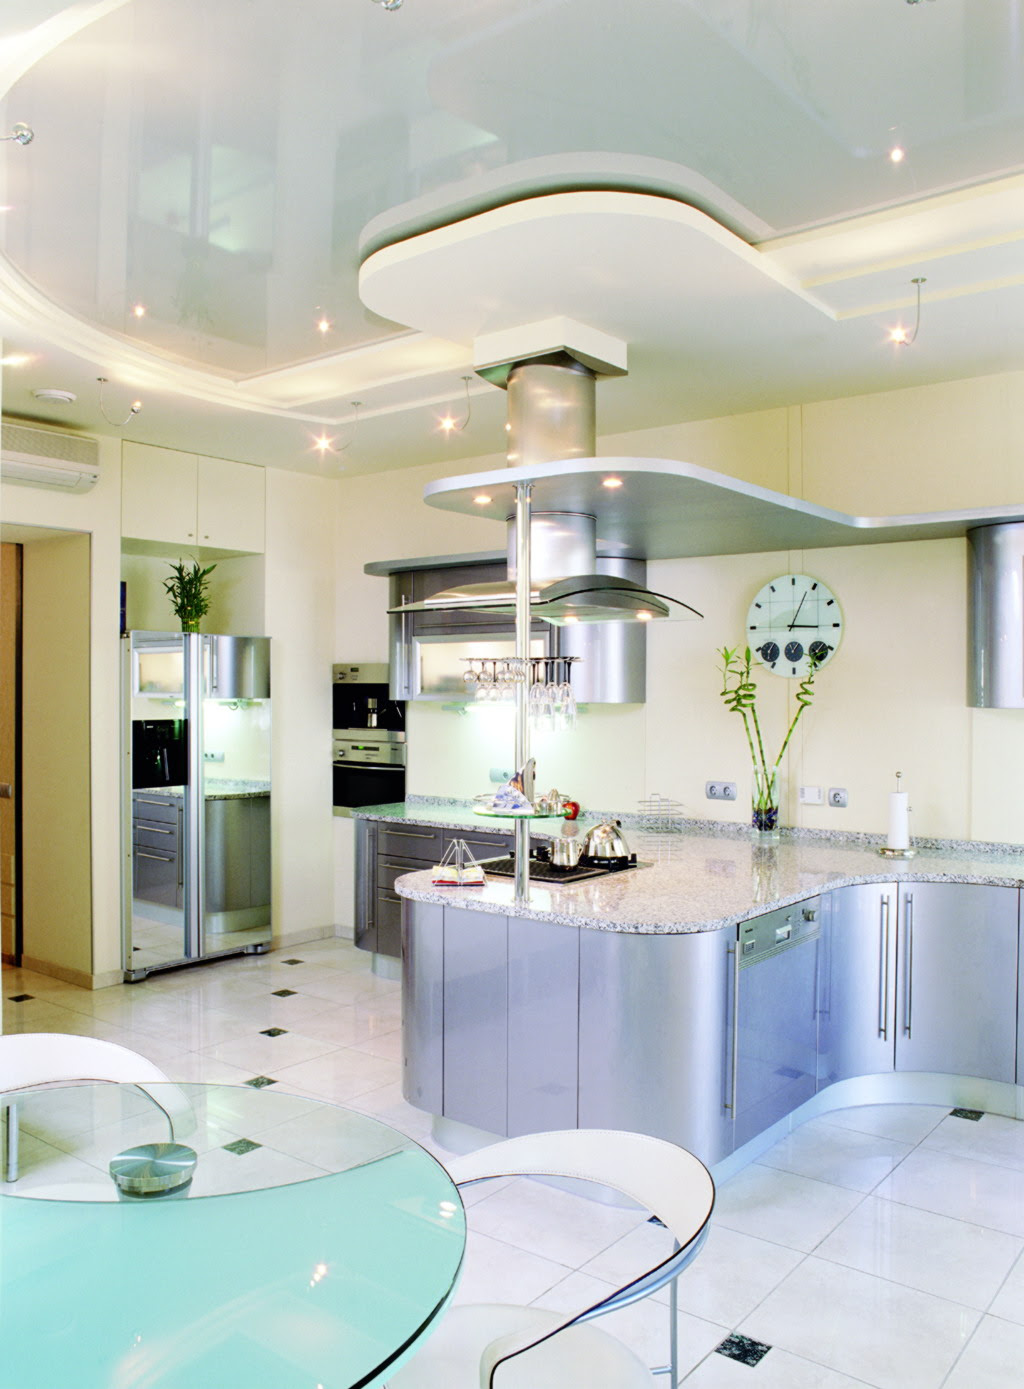 Bright Kitchen Décor in Minimalist Design  MYKITCHENINTERIOR